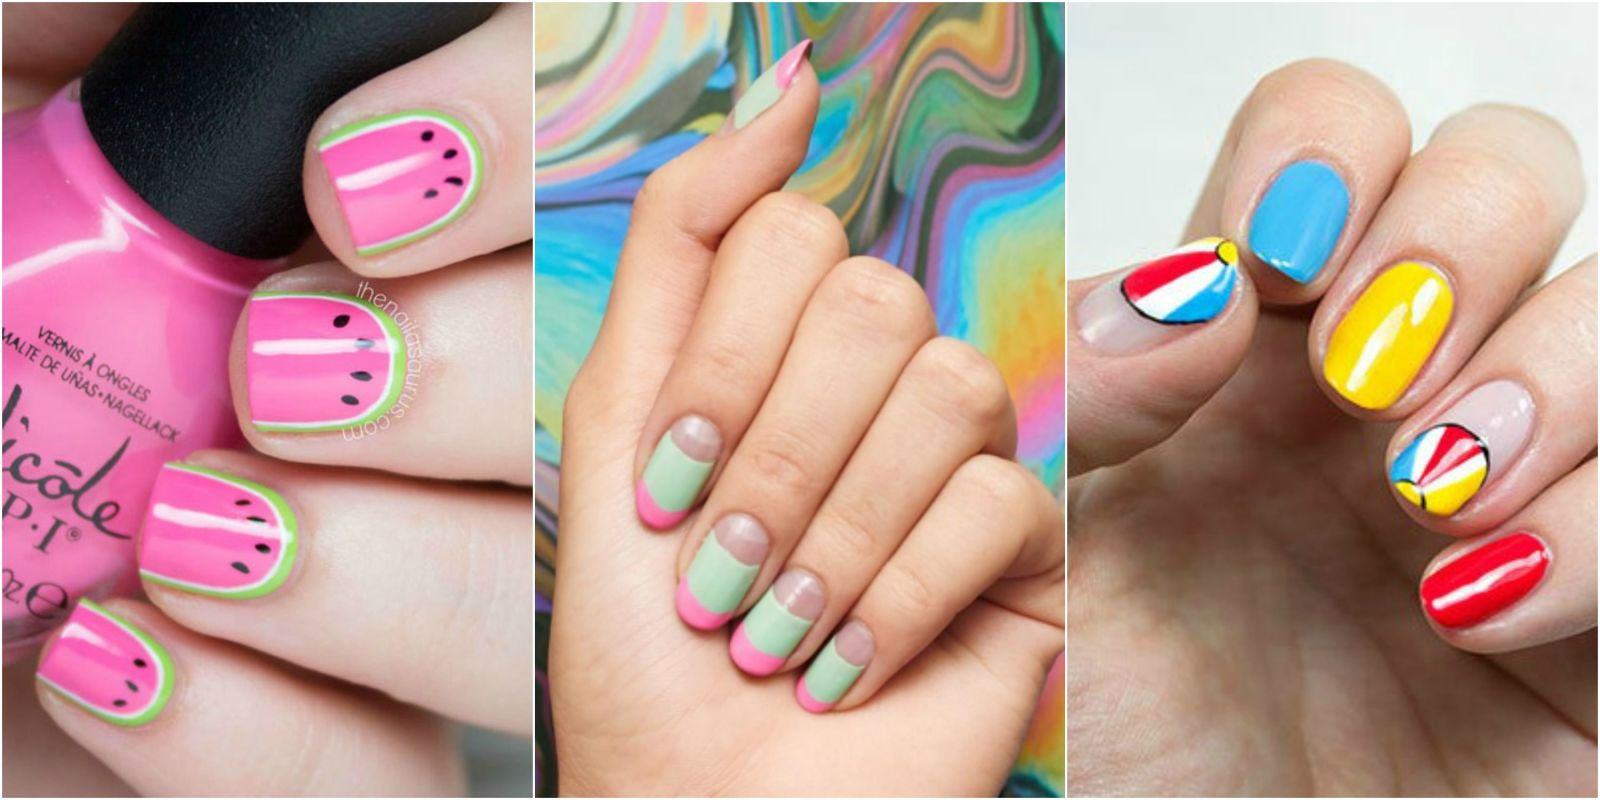 30 summer nail designs for 2017 best nail polish art ideas for summer - Nail Art Designs Ideas